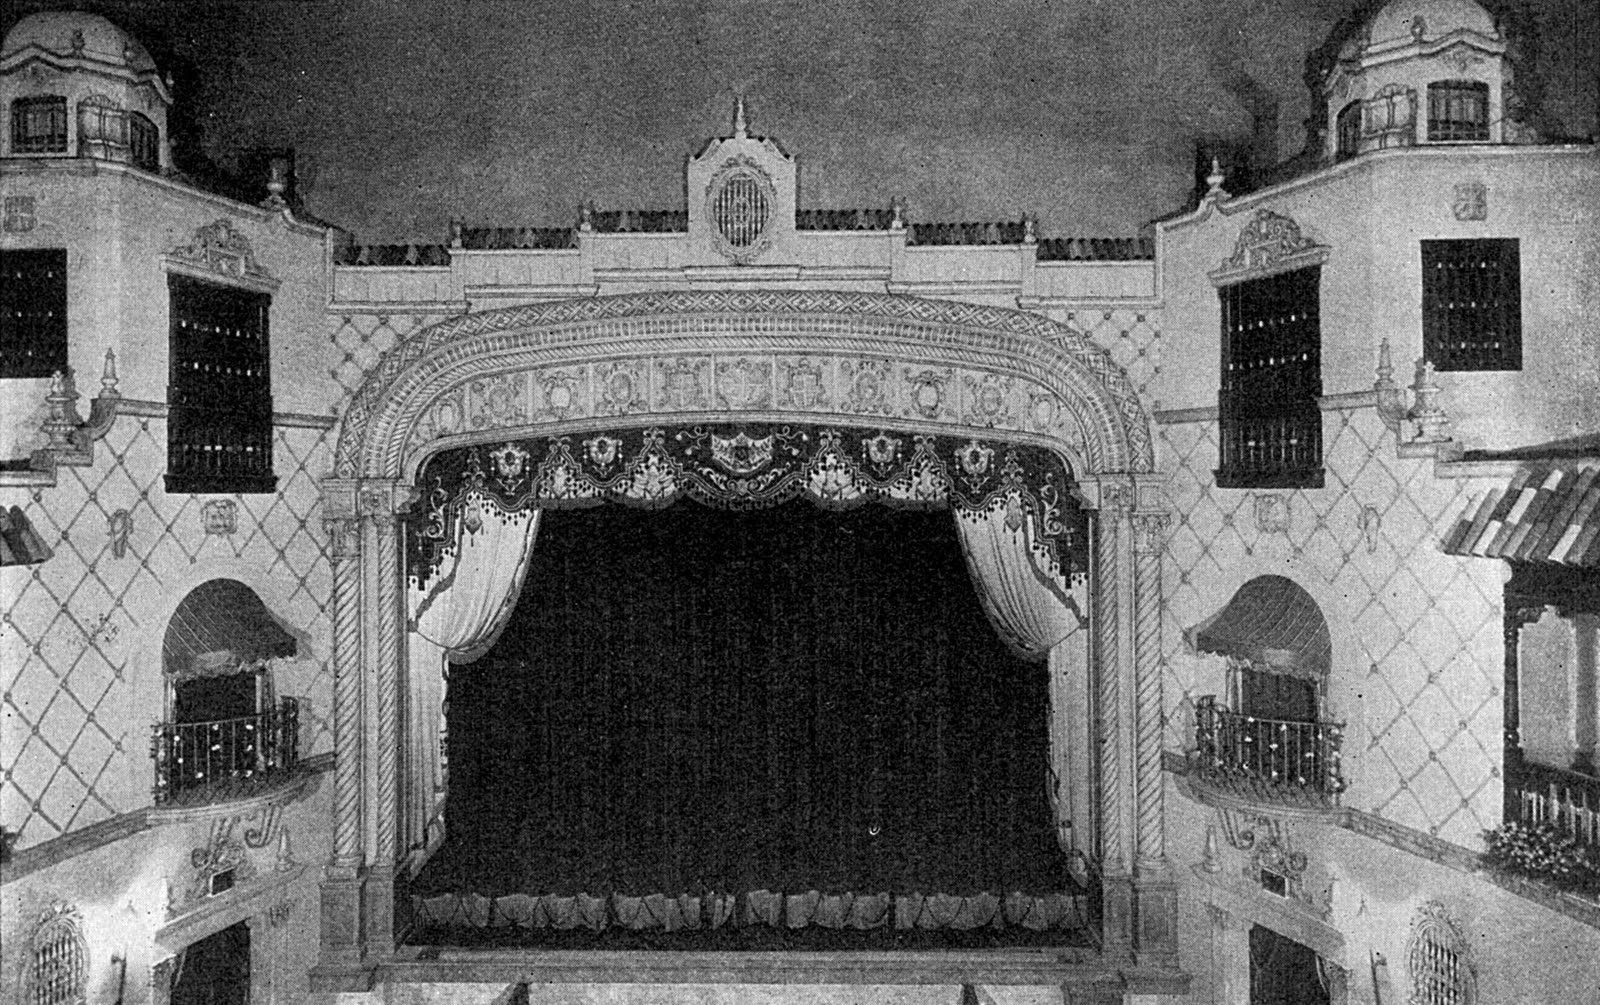 1930 photo of Ritz Auditorium